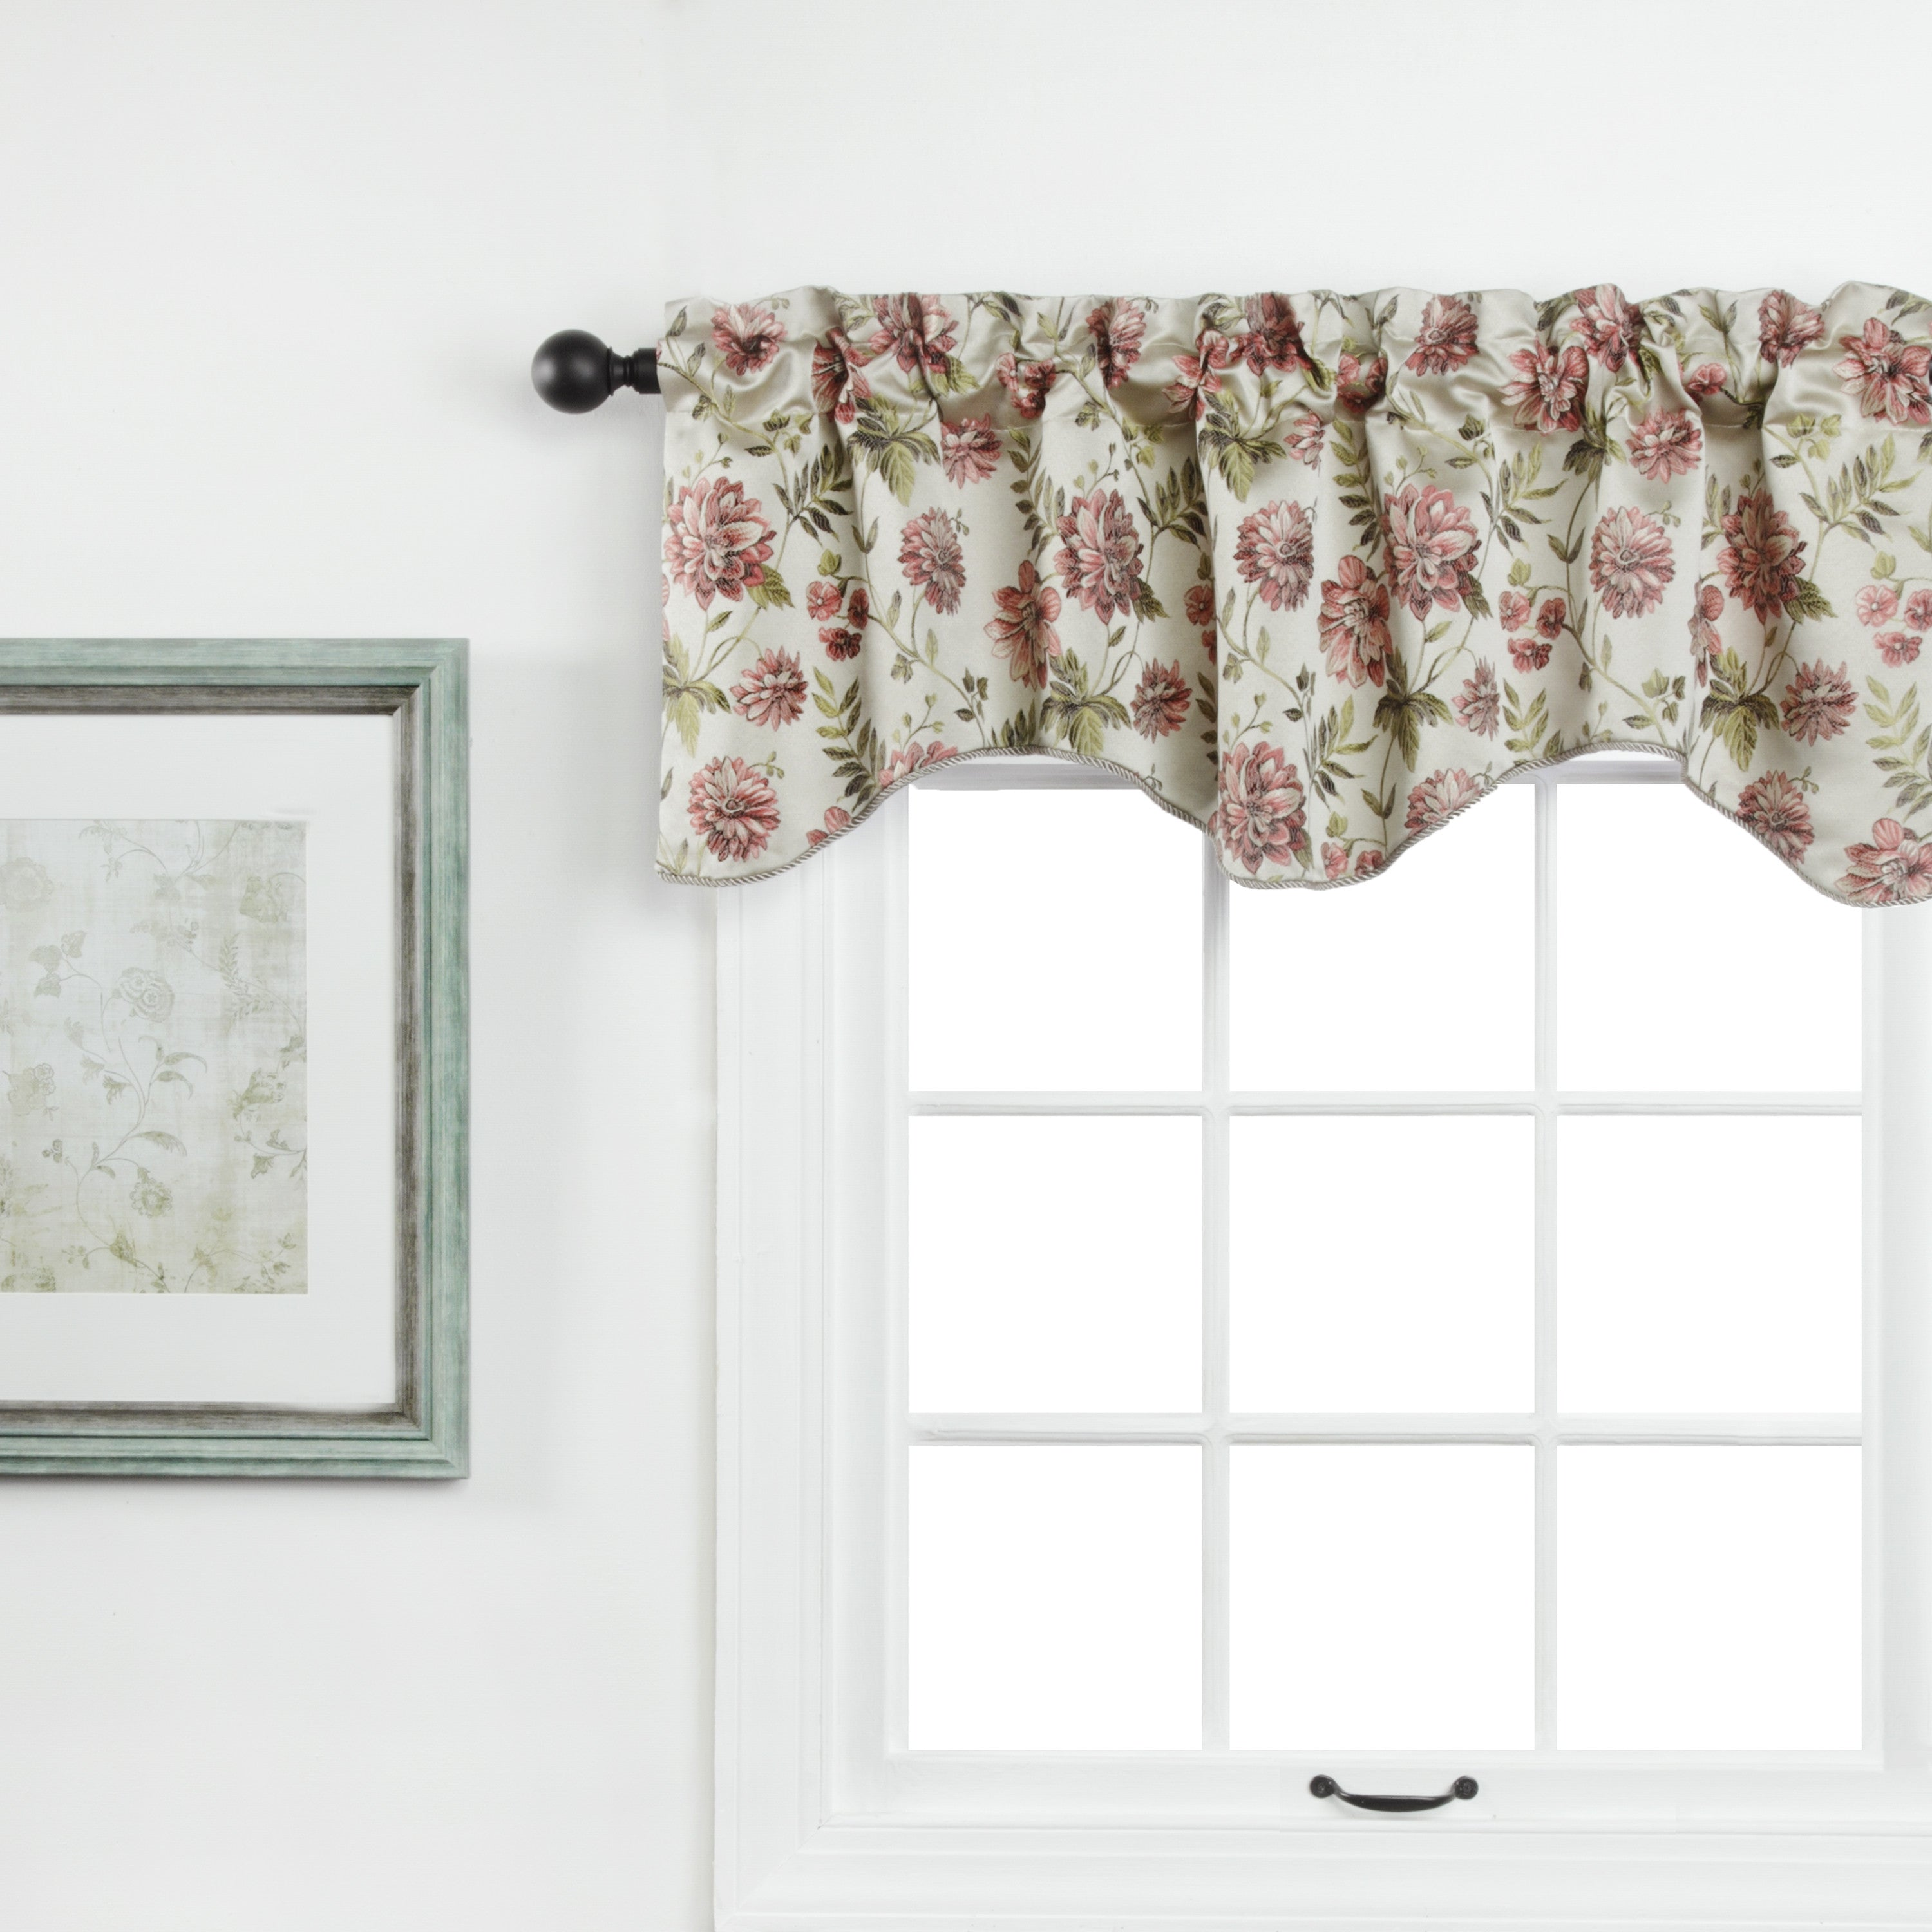 Dahlia Rod Pocket Lined Scalloped Valance